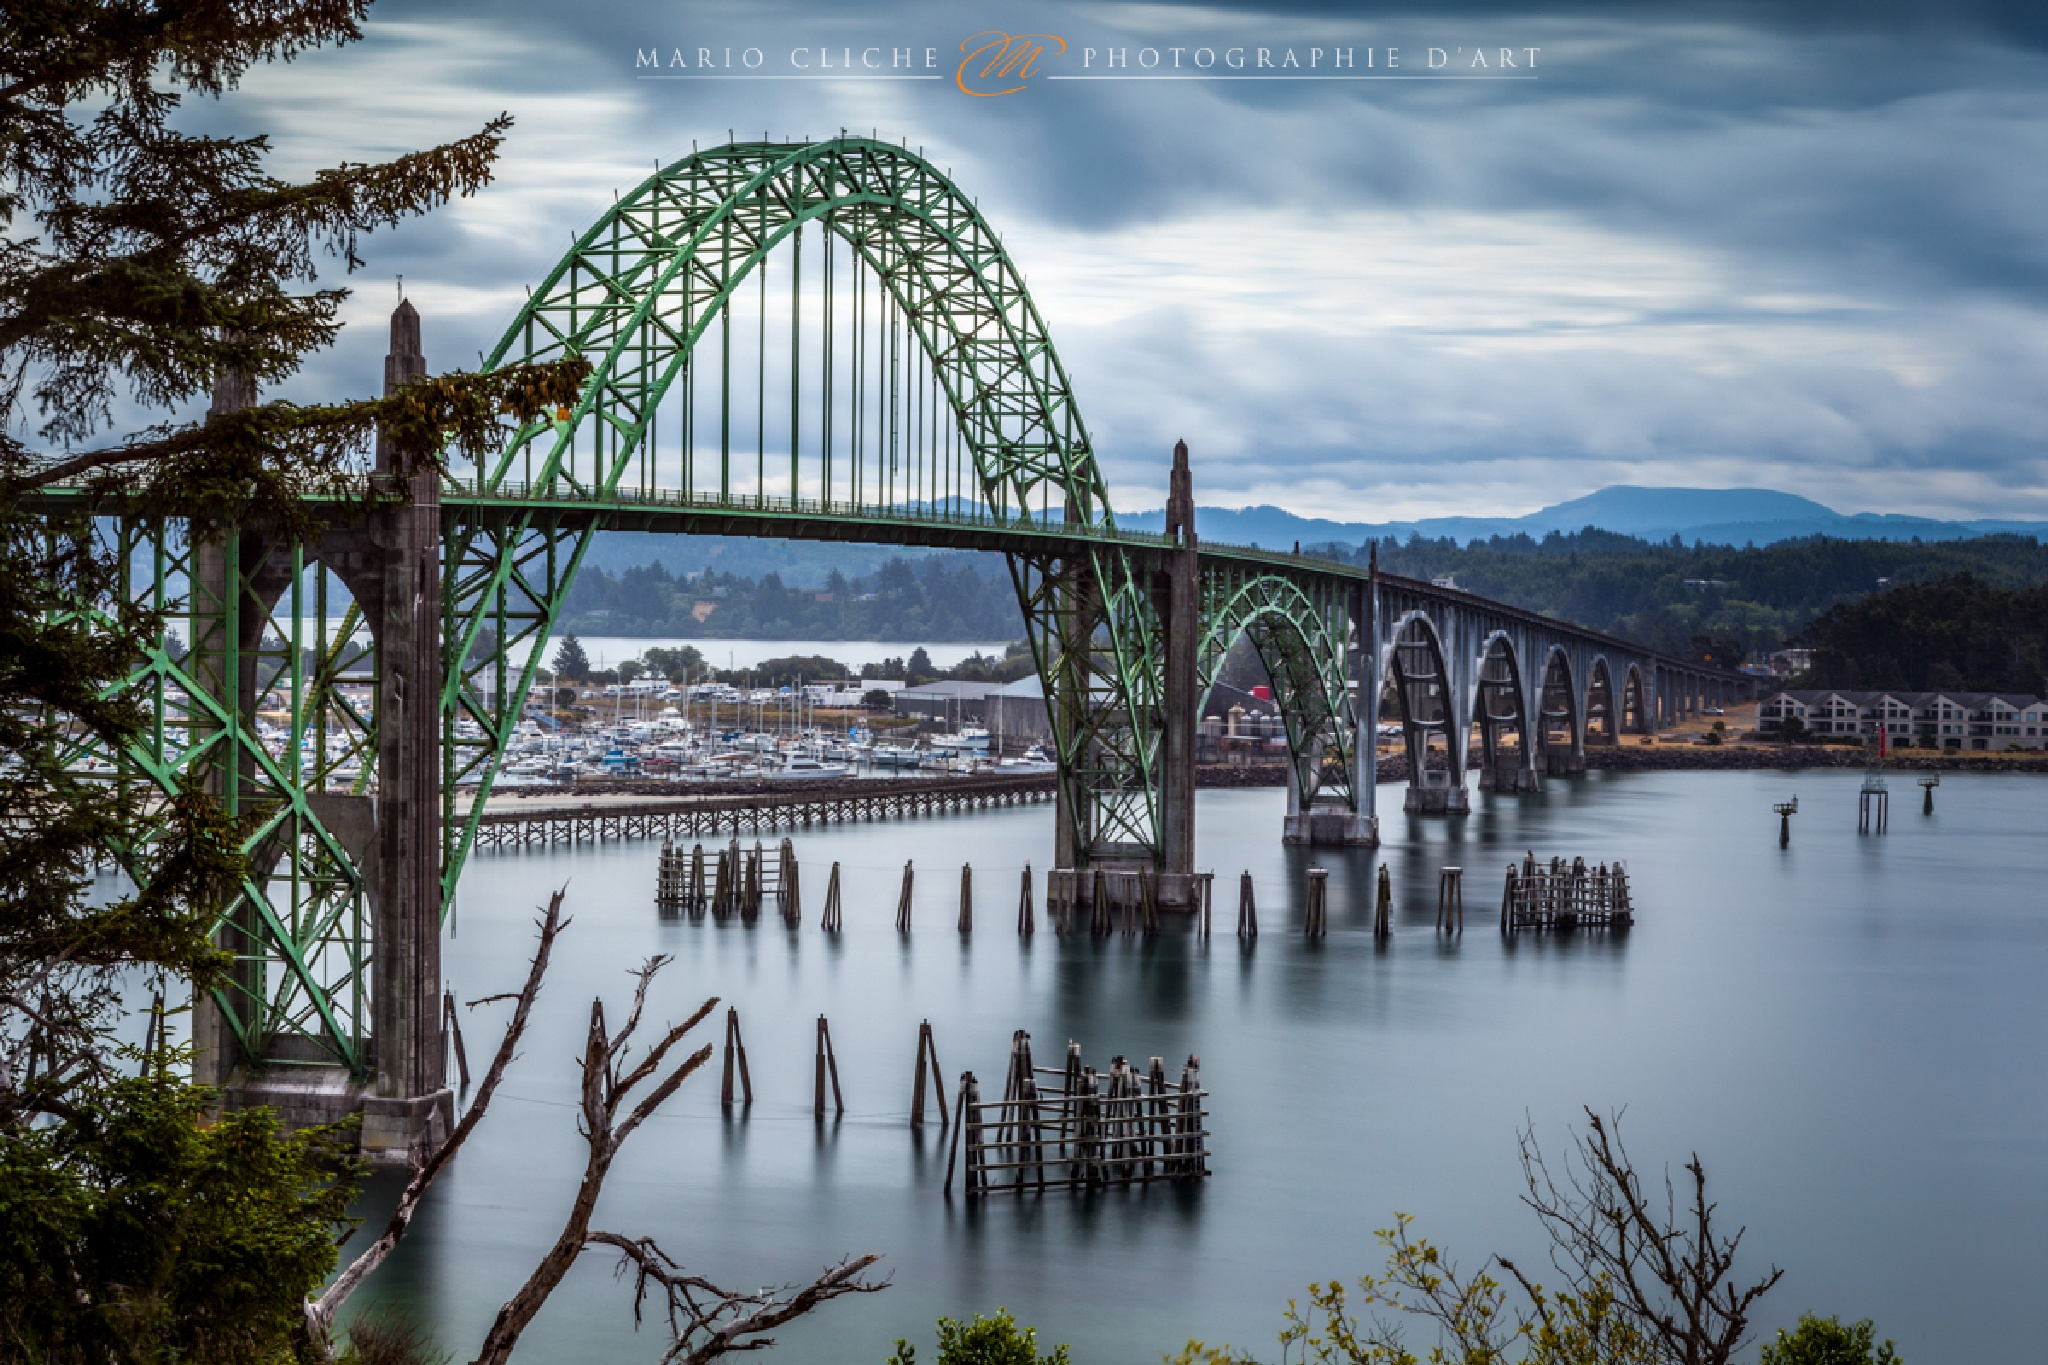 Newport Bridge by Mario Cliche